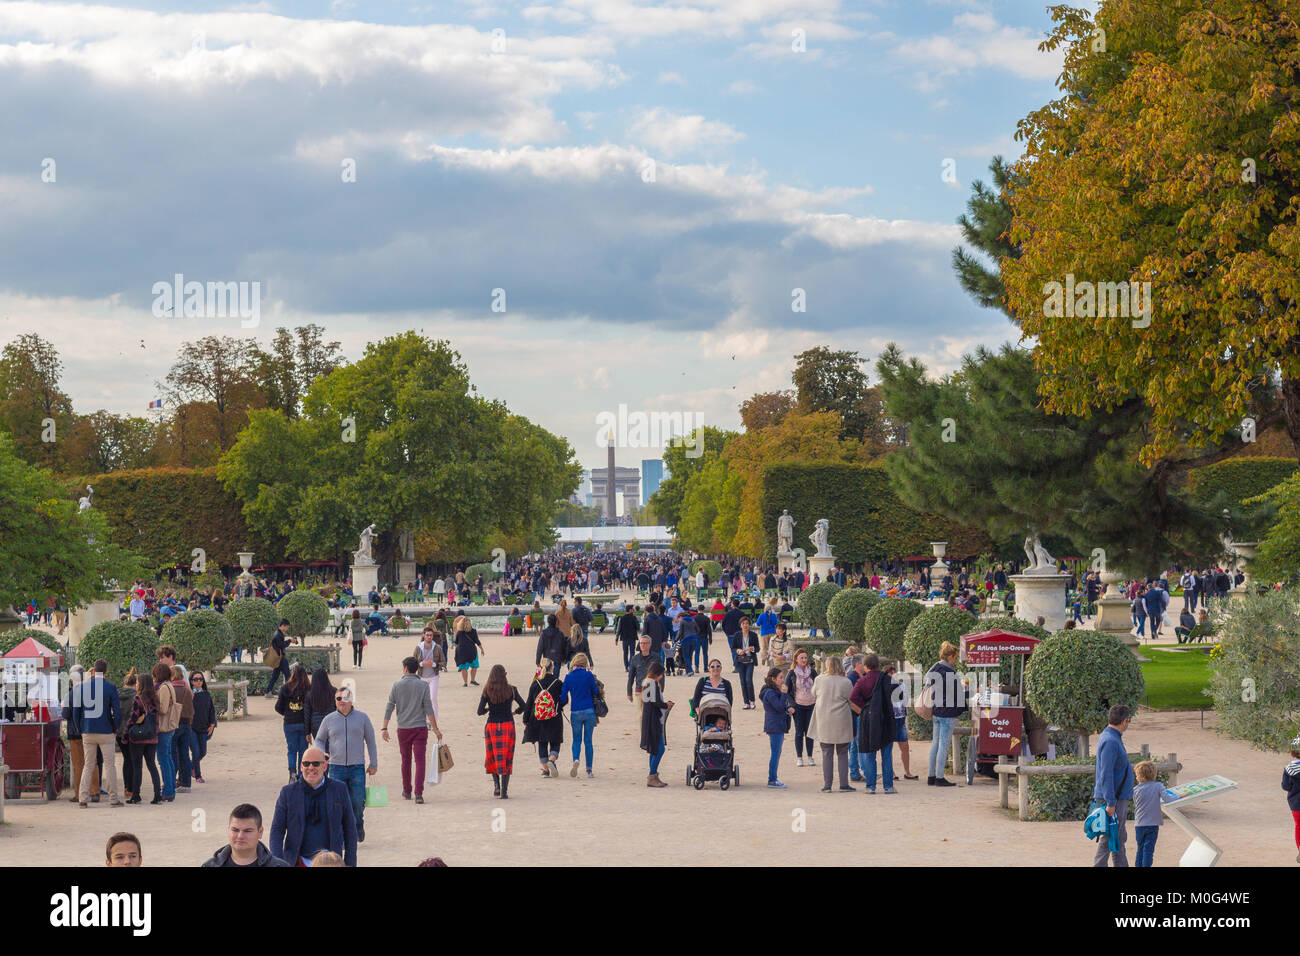 Unknown people strolling in the Jardin des Tuileries, Paris on a sunny September afternoon. - Stock Image